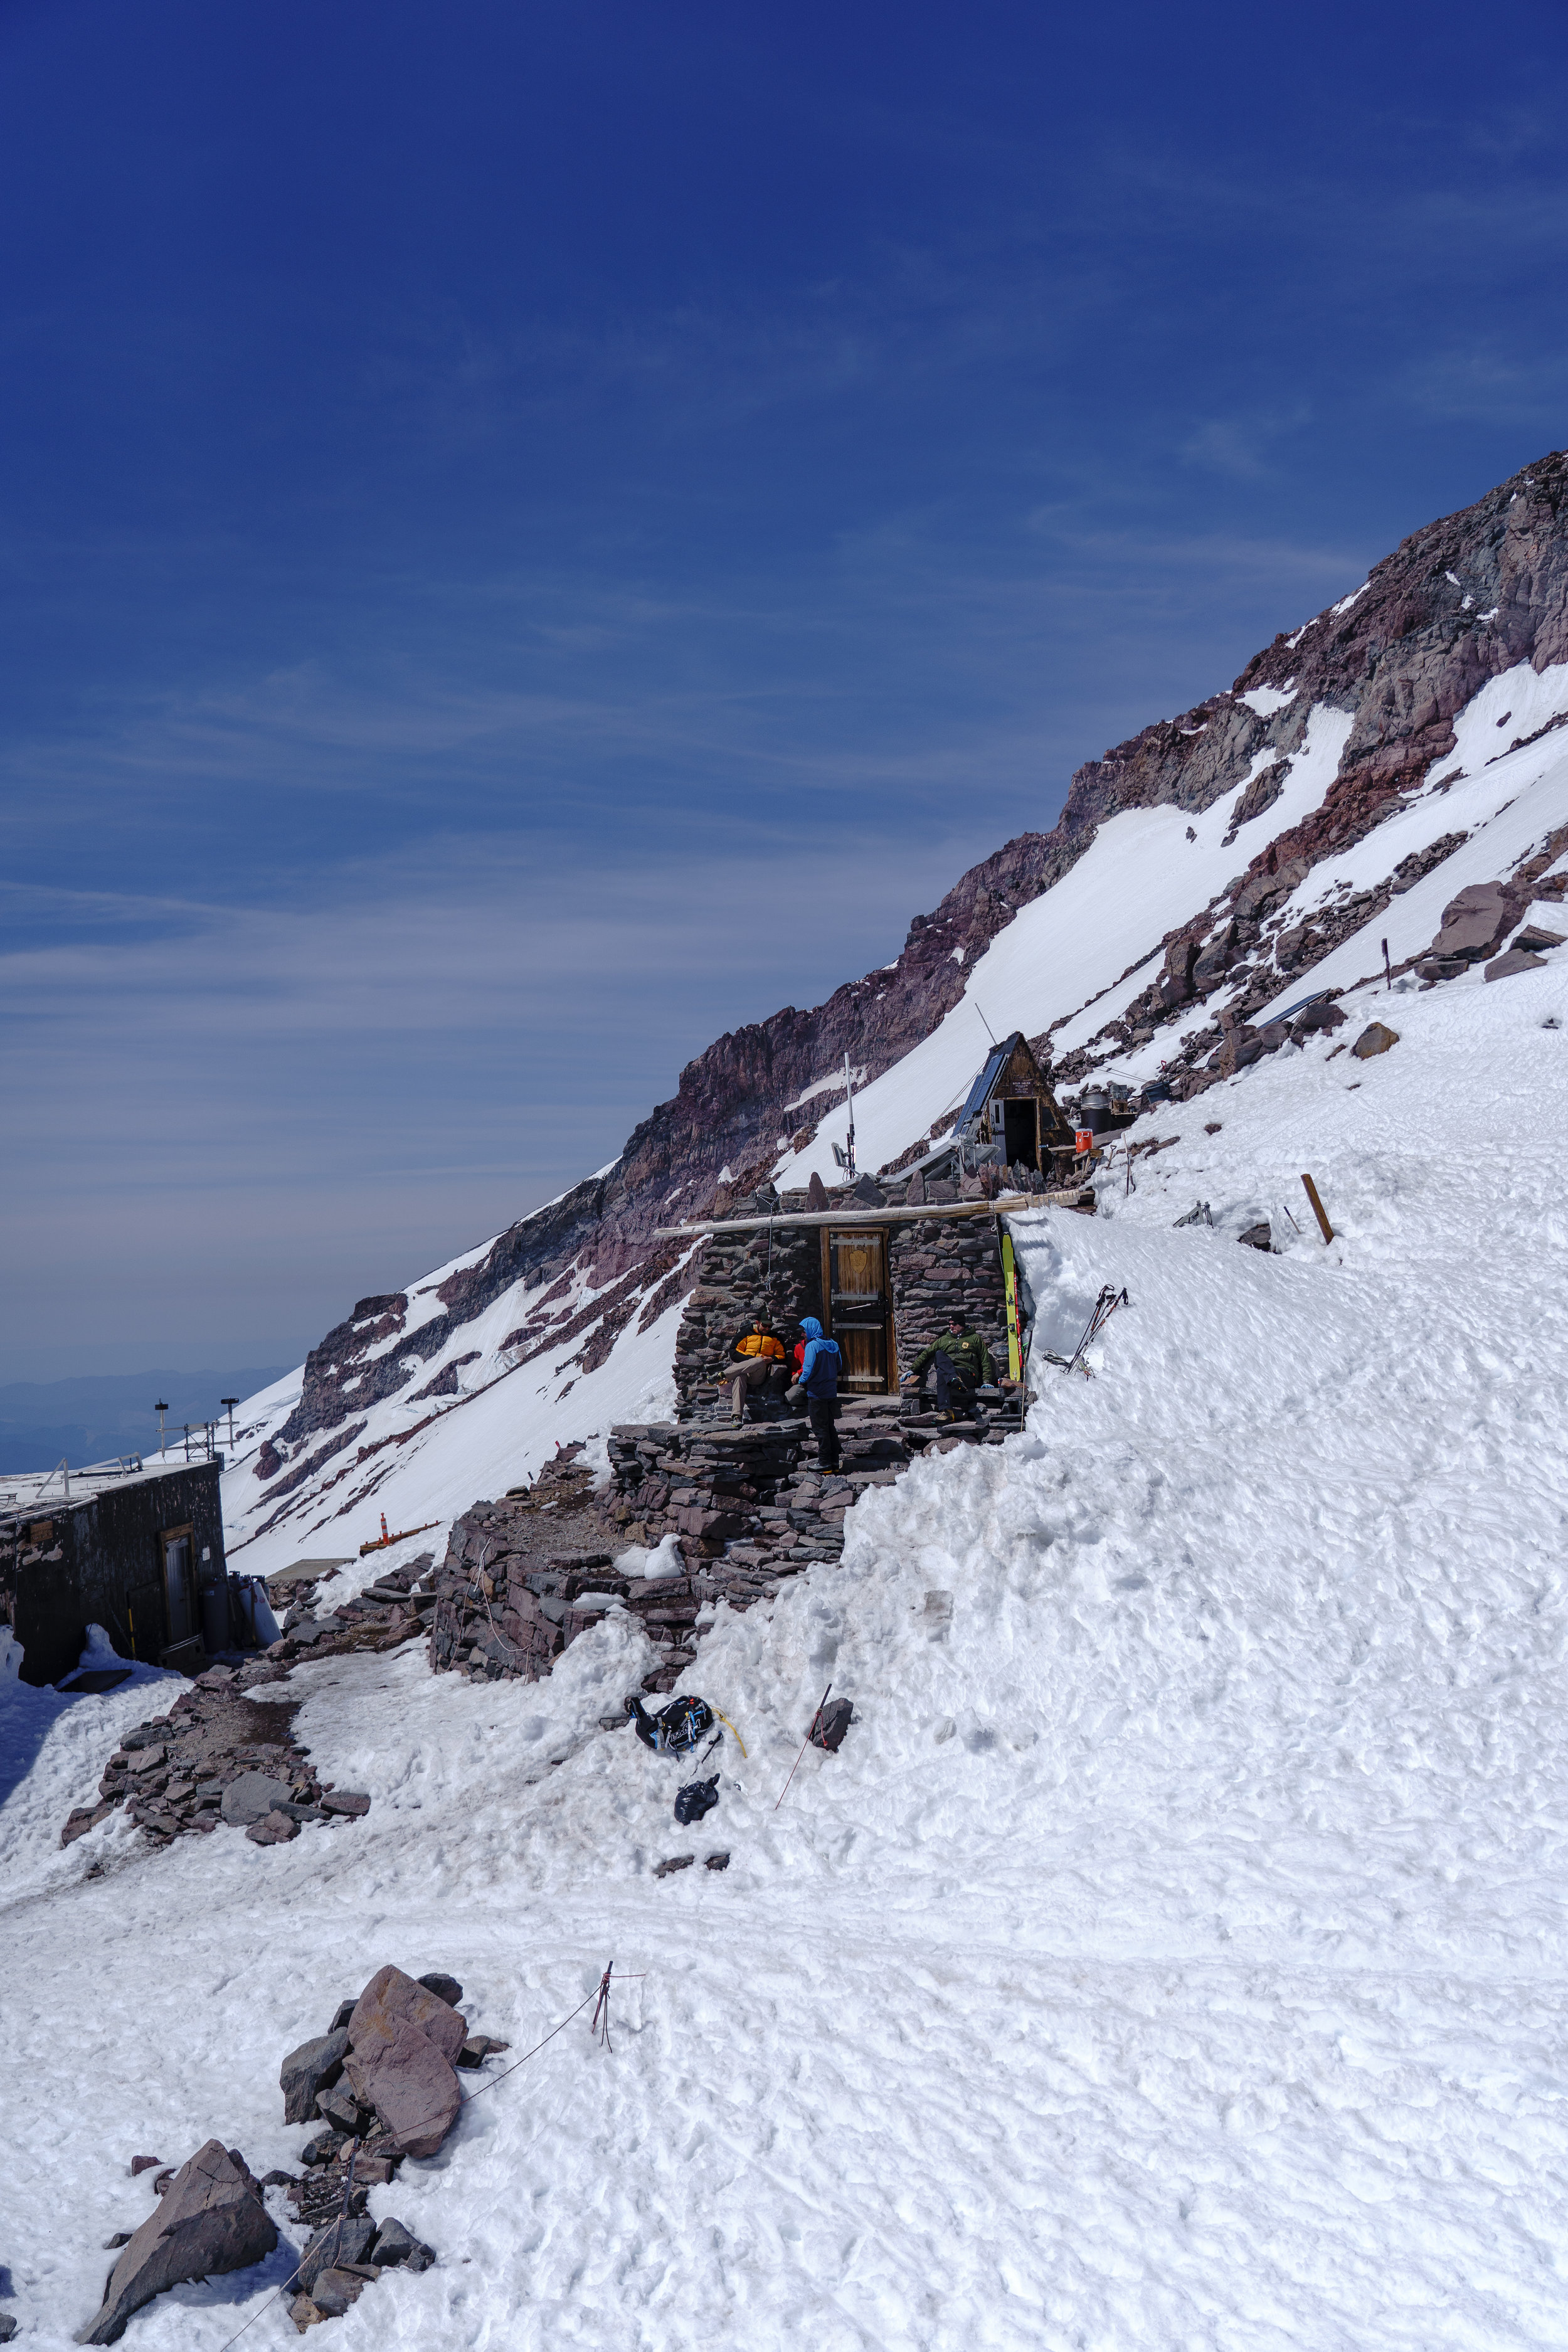 Camp Muir Huts for rangers + climbers